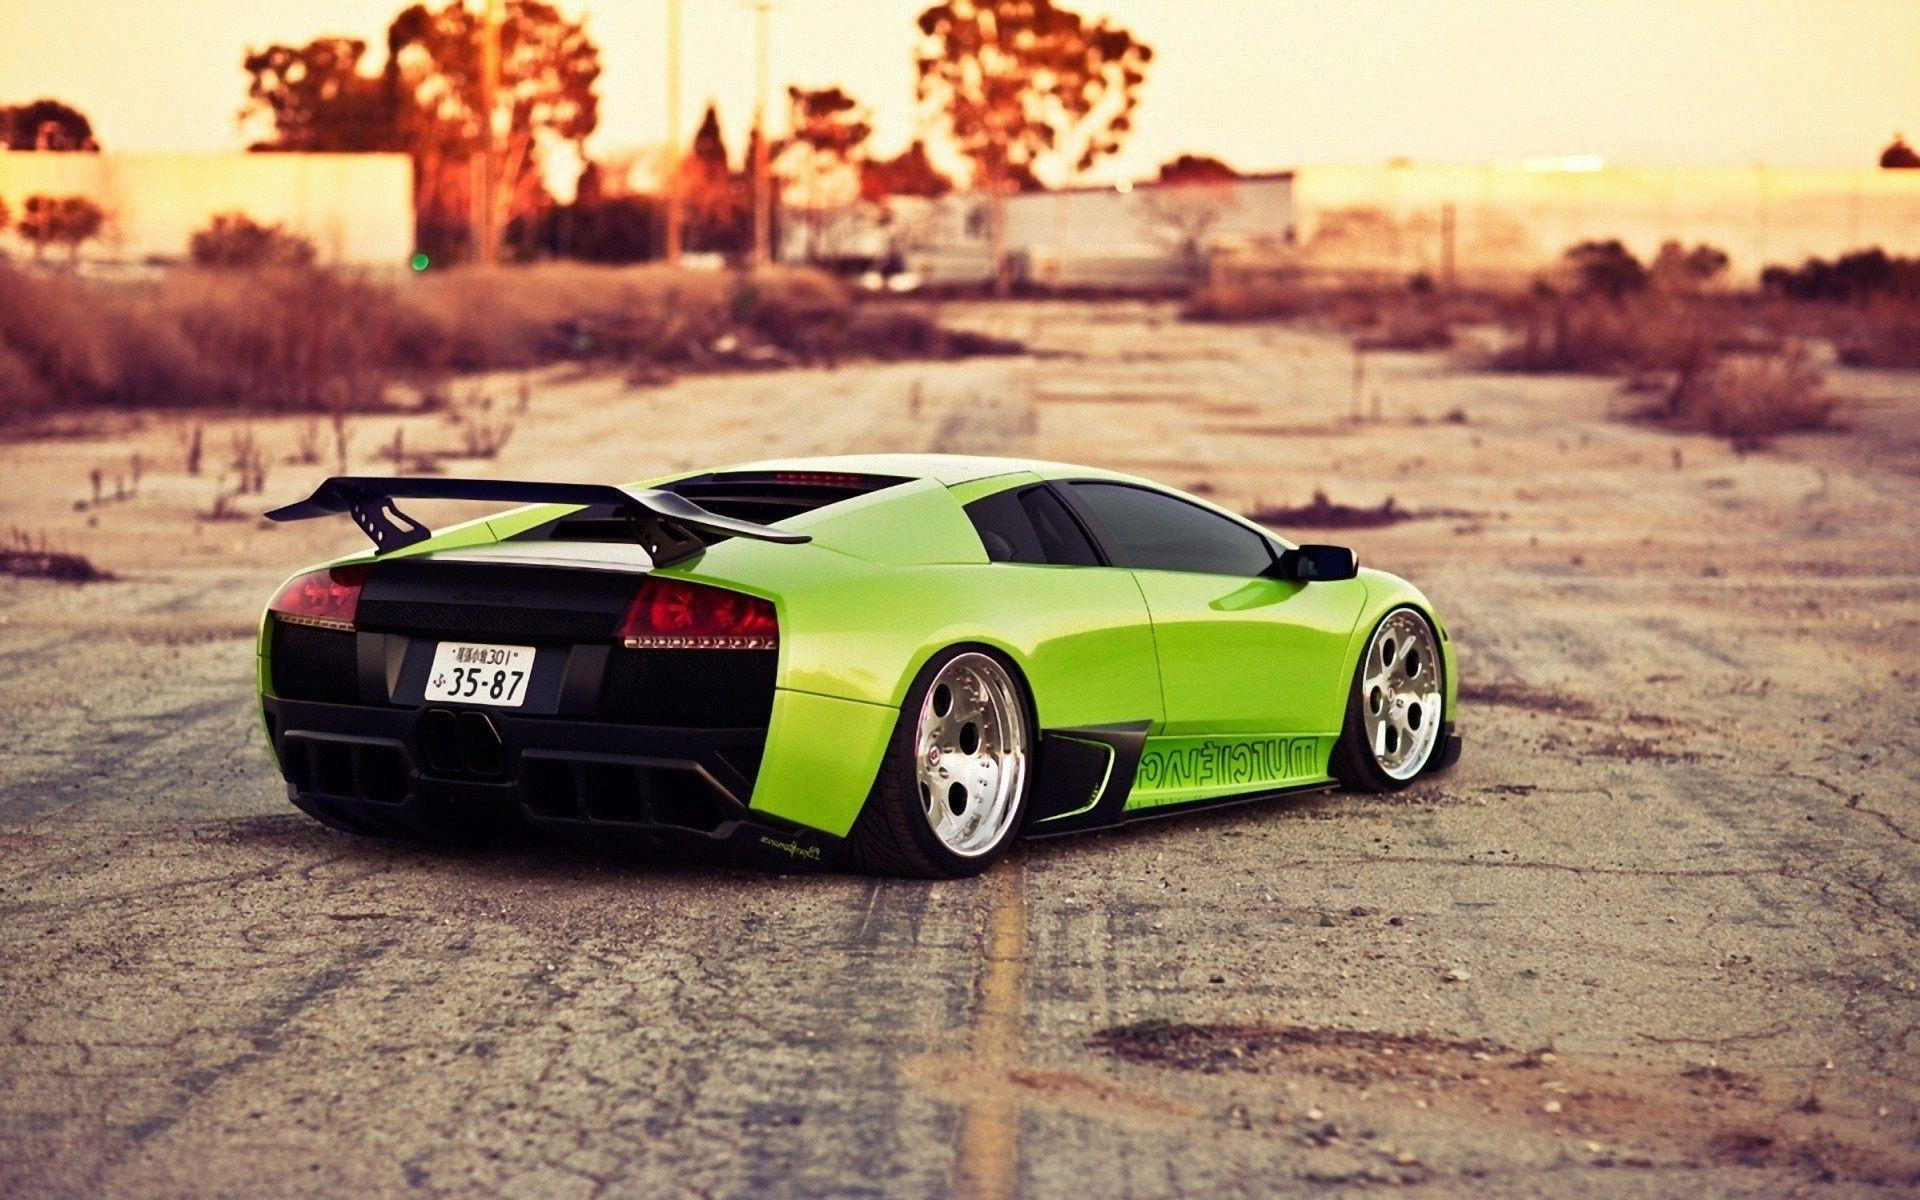 Super Cars wallpapers deskop backgrounds | High Quality PC Dekstop ...